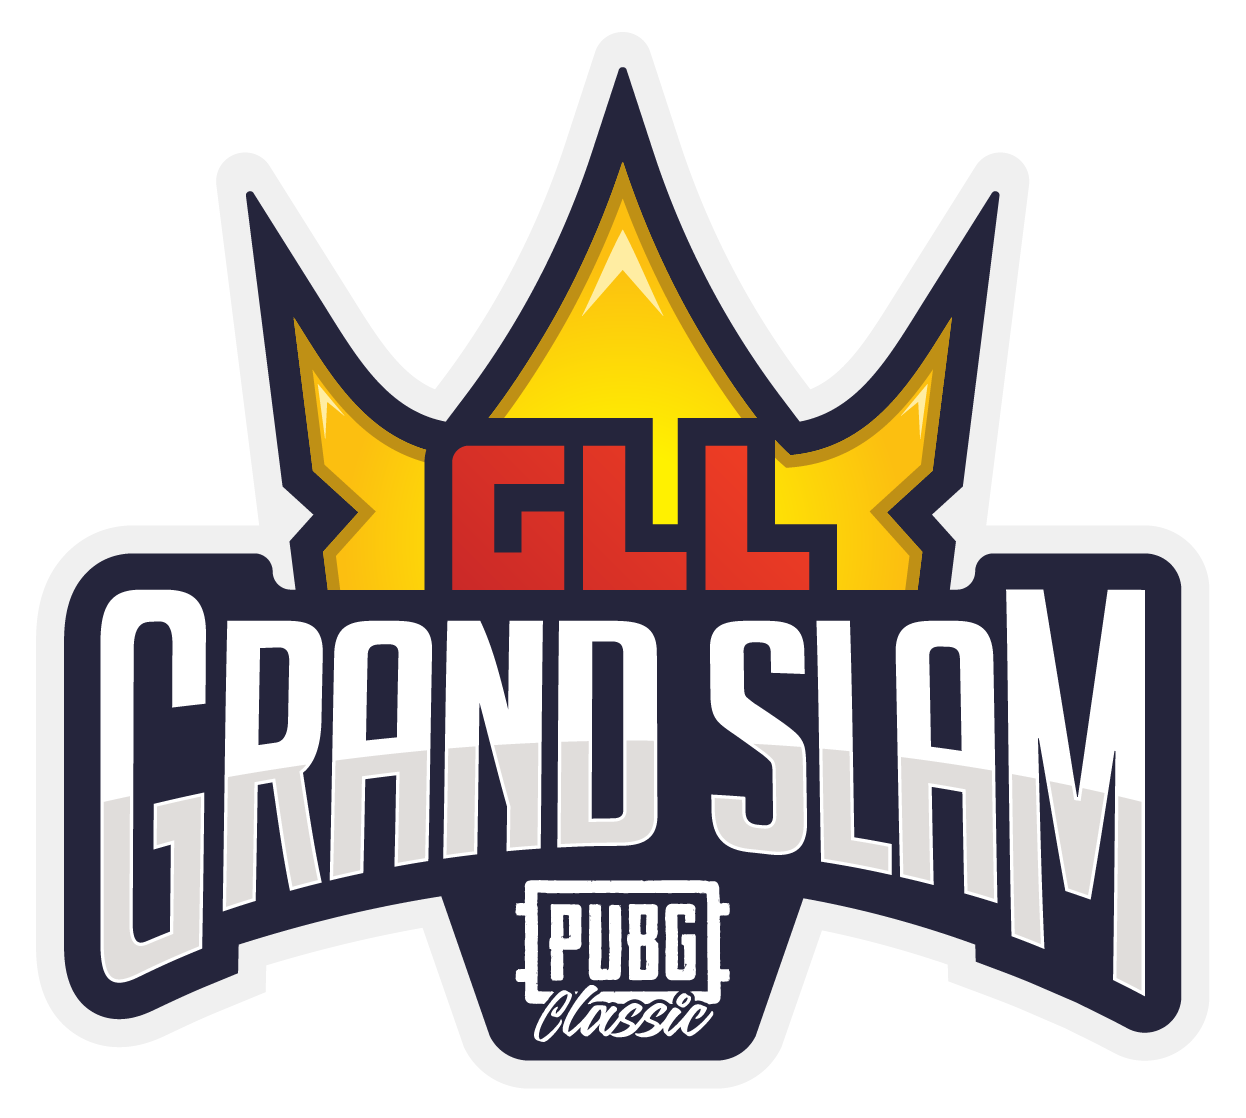 Aoc Is One Of The Main Partners At Gll Grand Slam Pubg Major In Stockholm Aoc Monitors